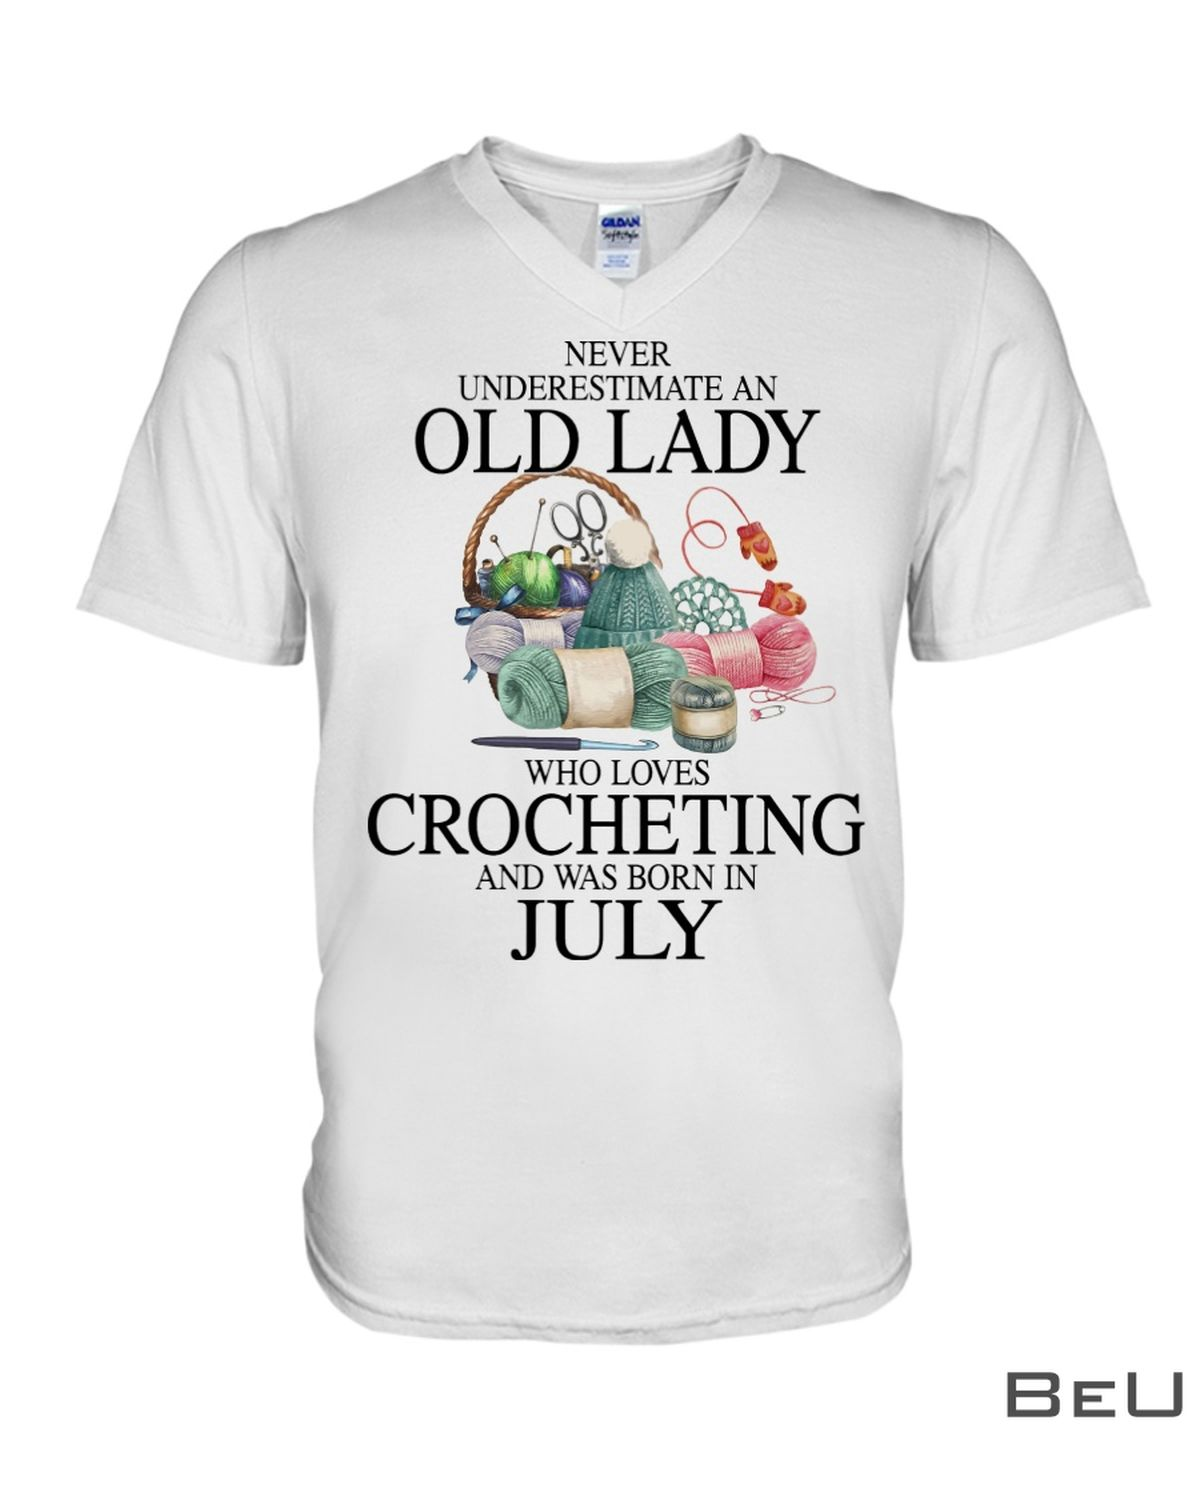 Never underestimate an old lady who loves Crocheting and was born in July shirtx